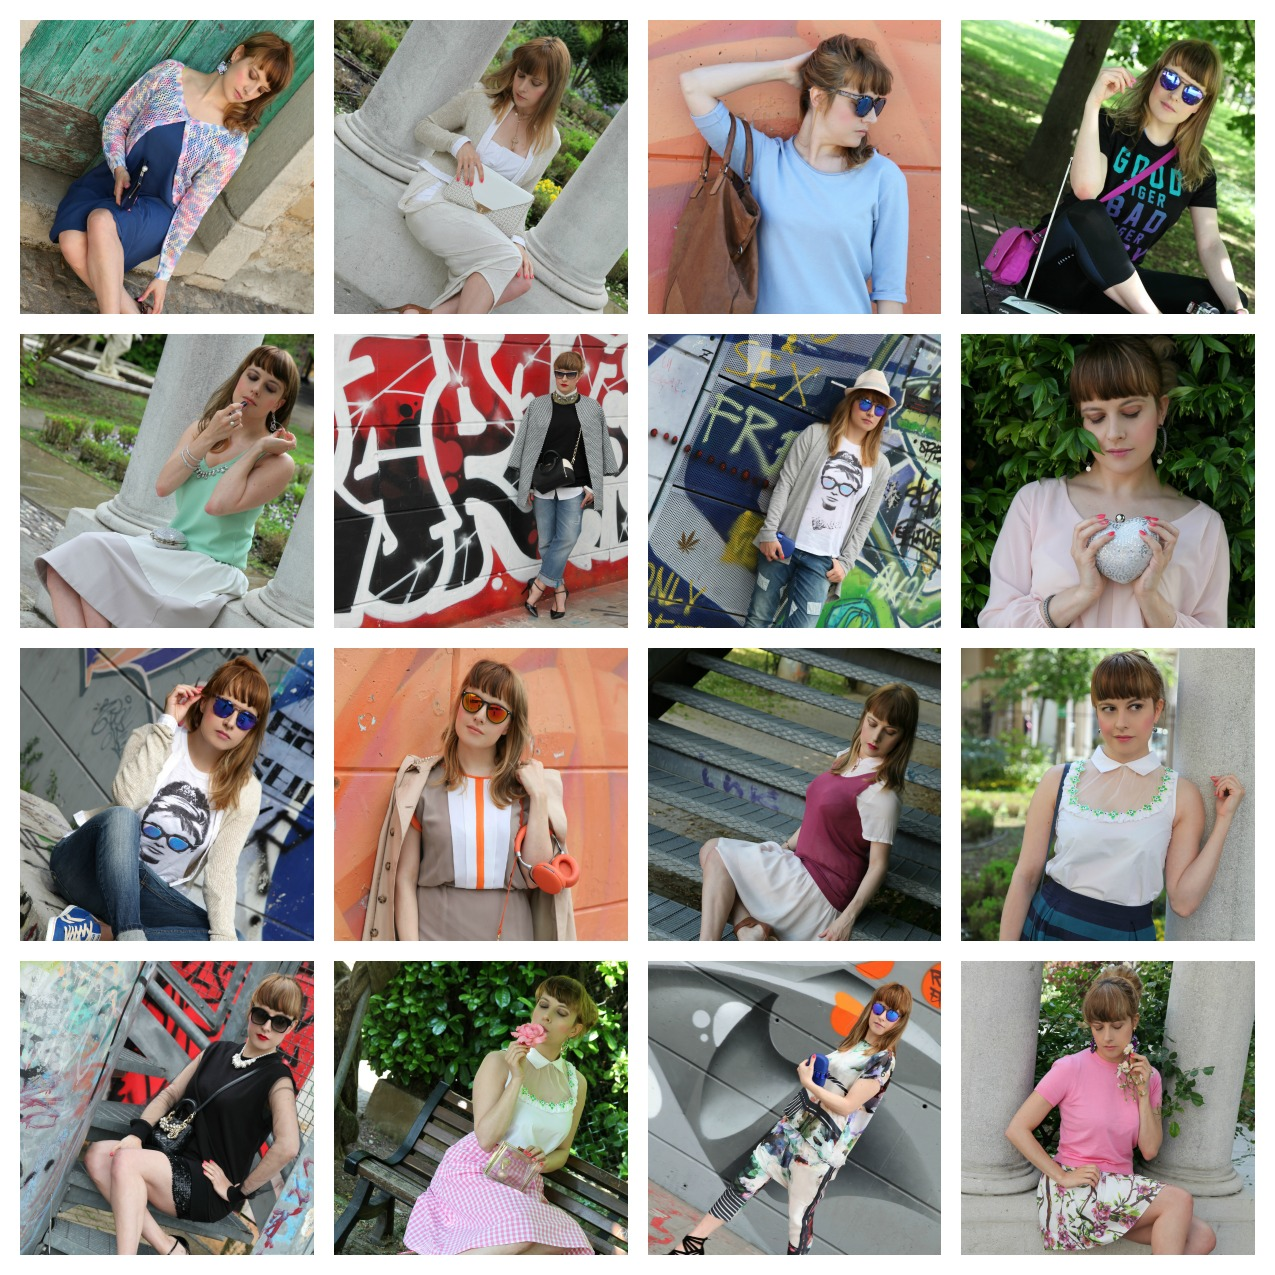 Best of: May 2015 outfits, alessia milanese, thechilicool, fashion blog, fashion blogger , risskio, asics, miawish